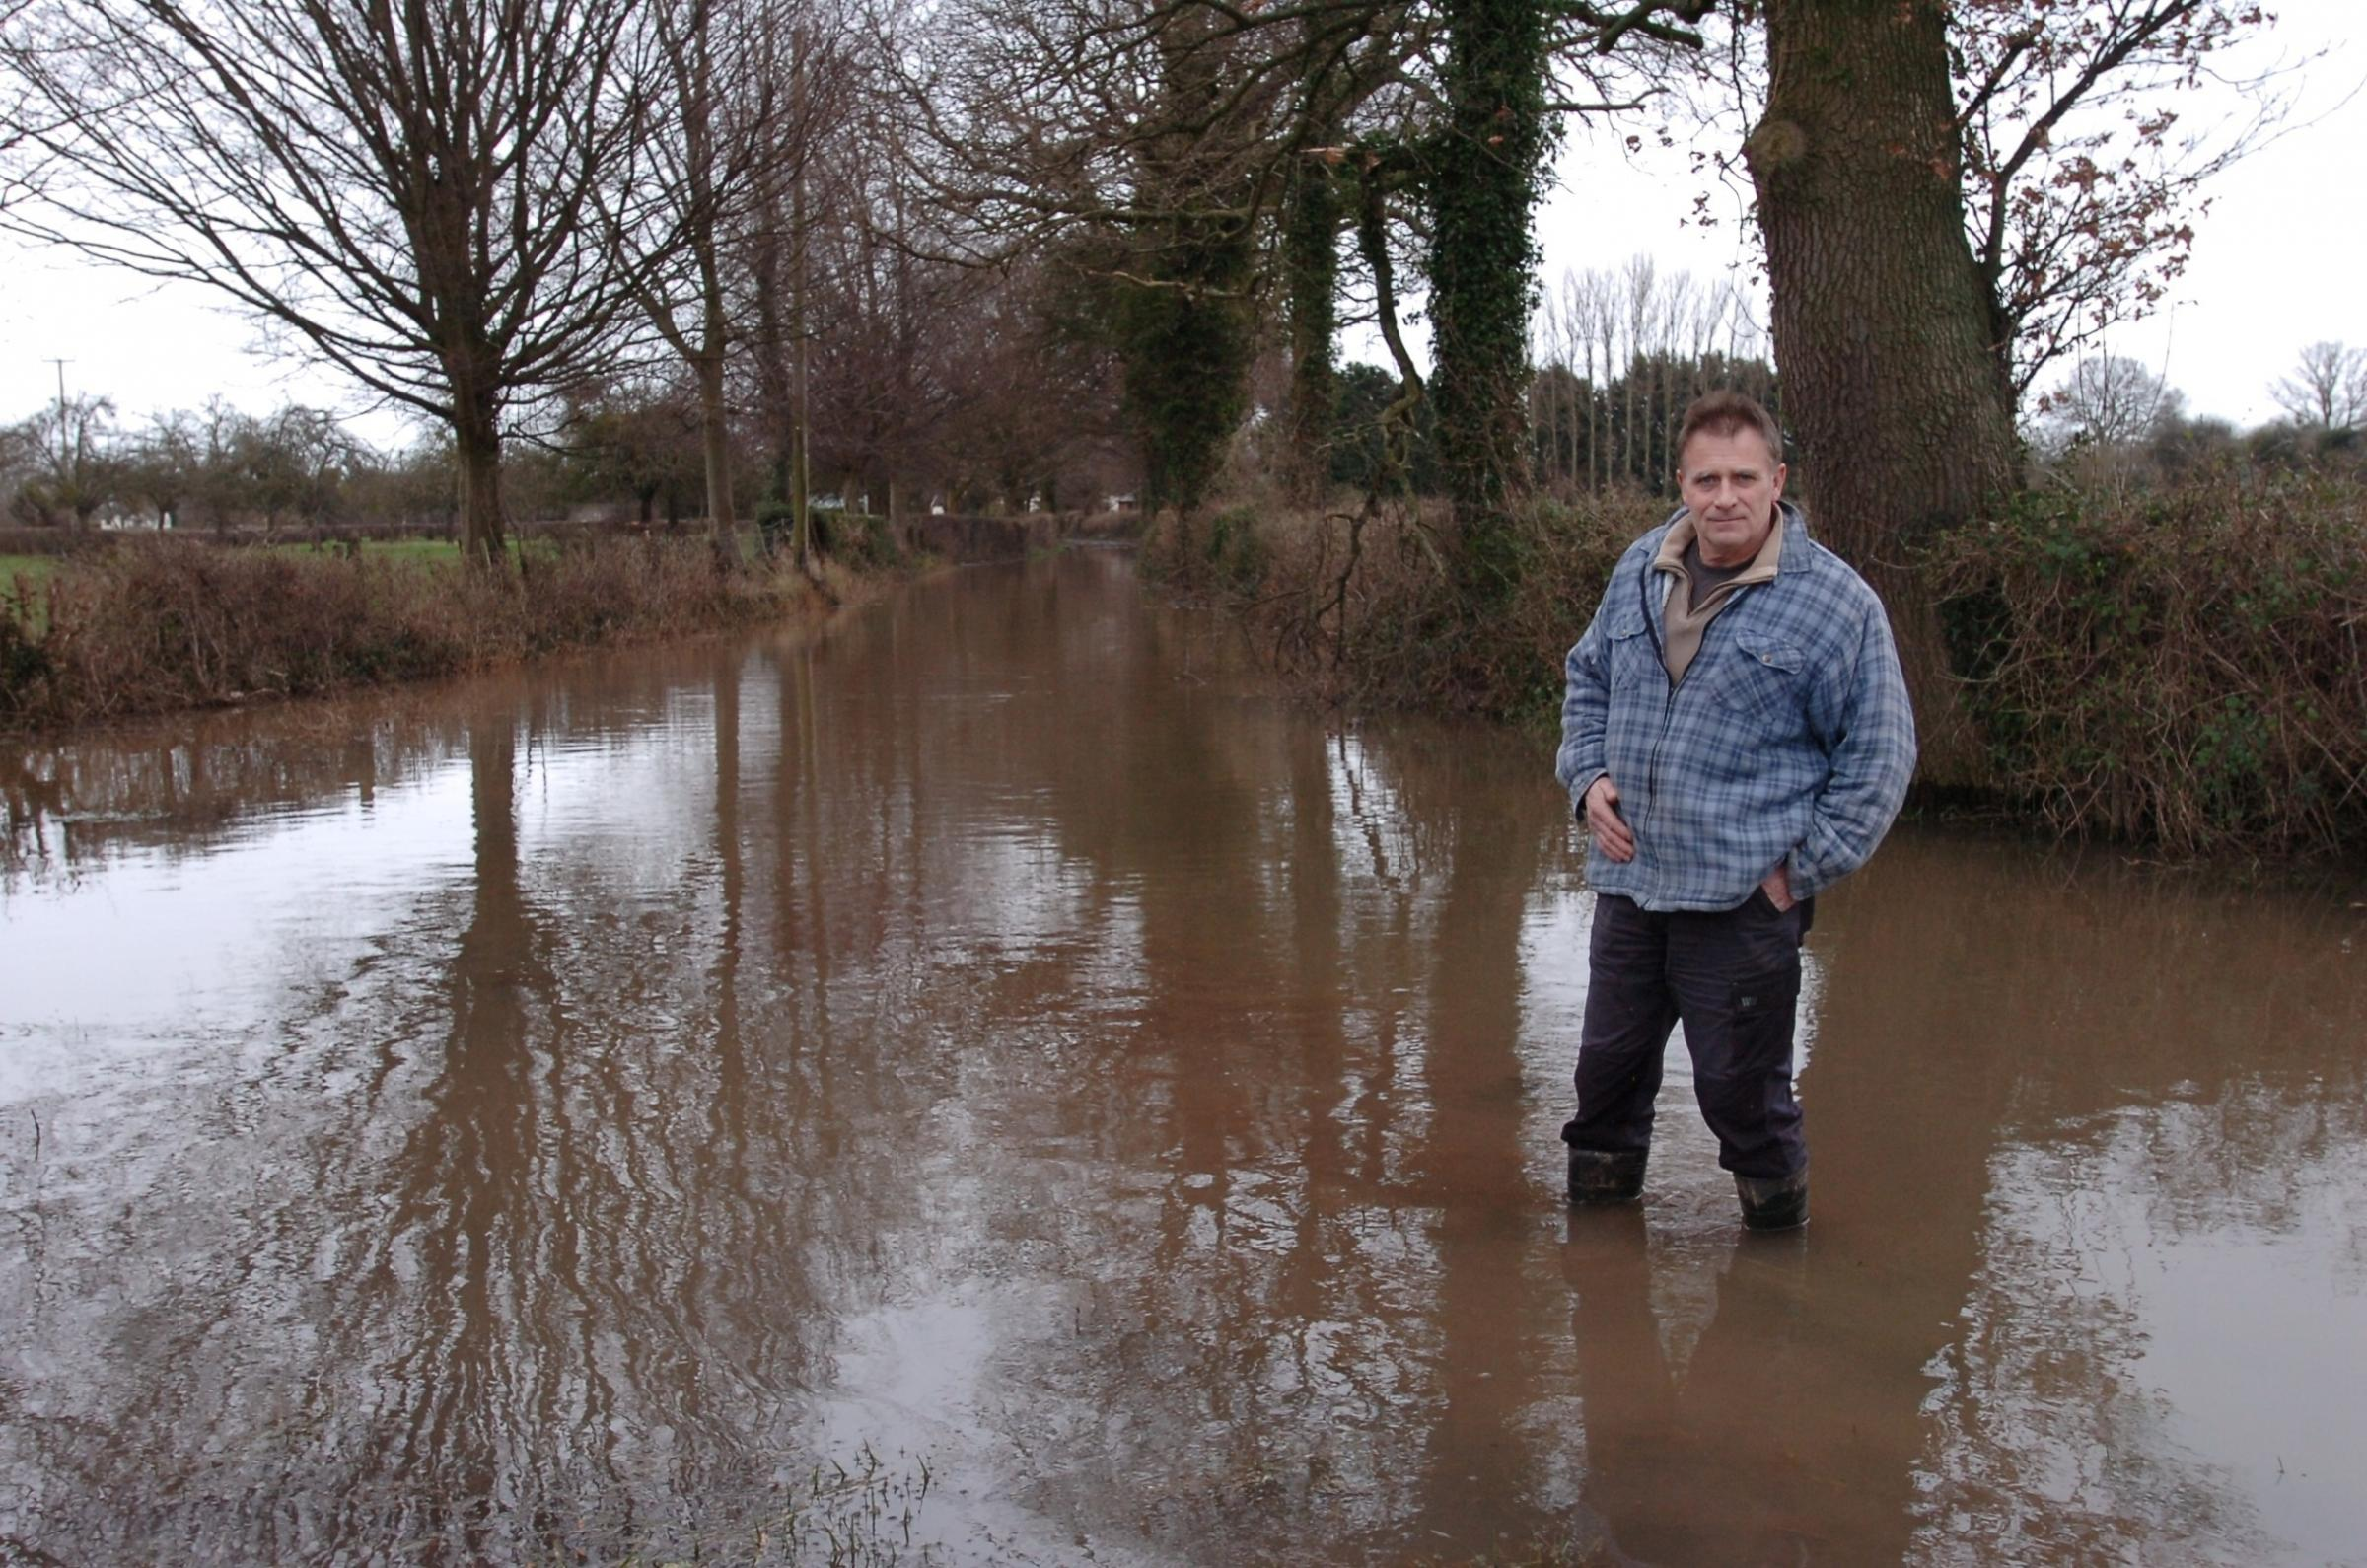 Madley residents stranded due to floods